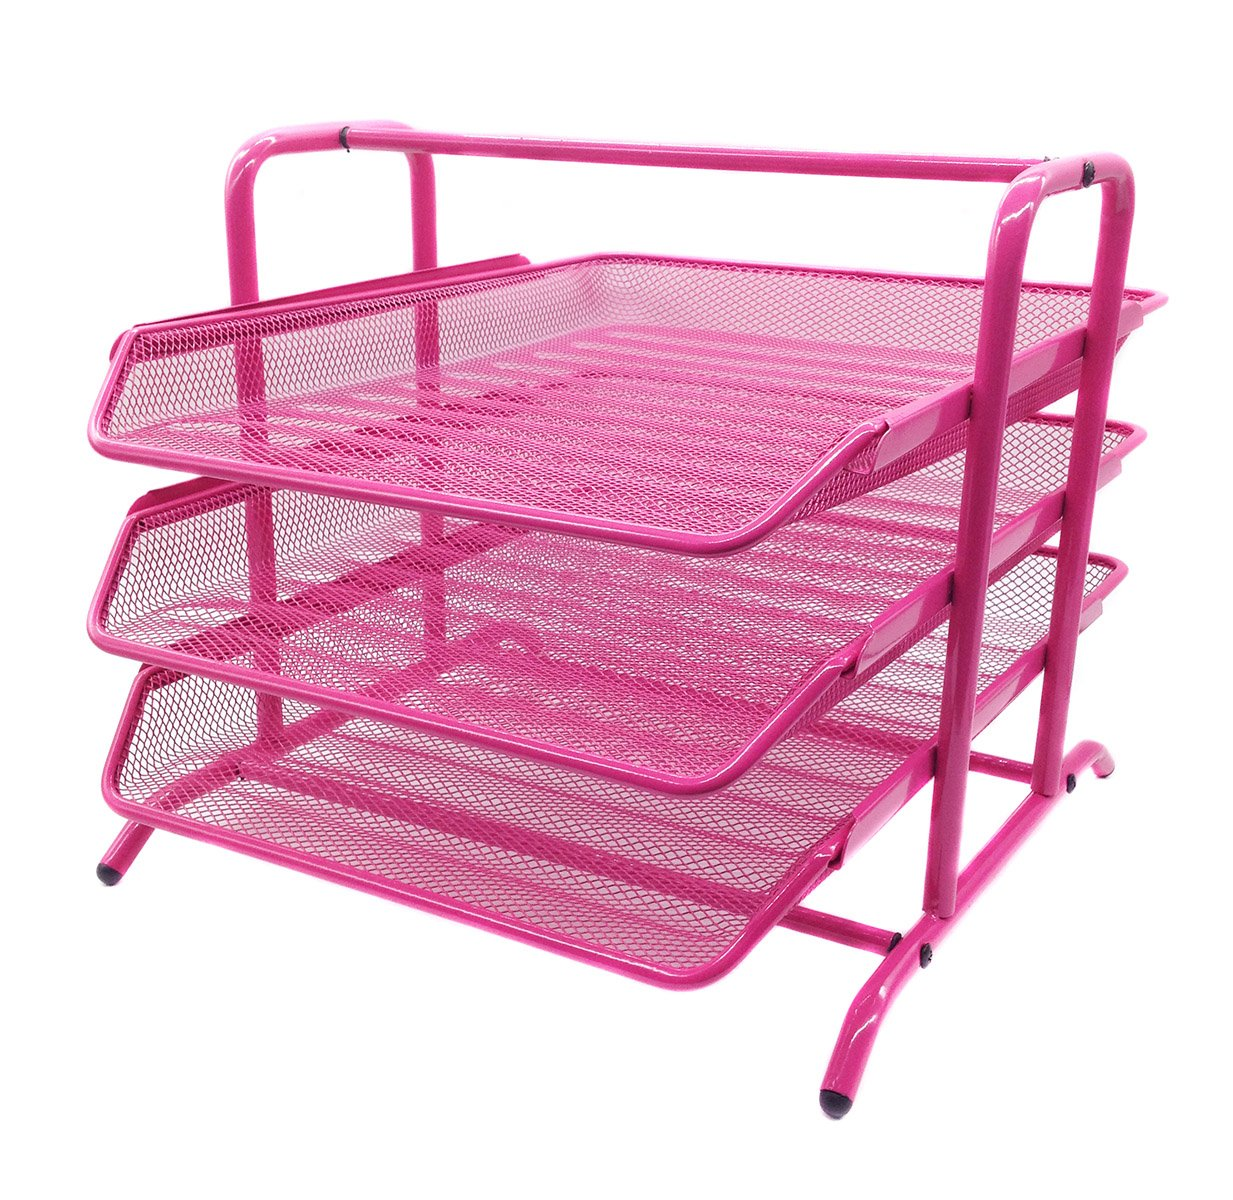 Superb Details About Easypag 3 Tier Mesh Desk Organizer Tray File Holder Pink Home Interior And Landscaping Sapresignezvosmurscom